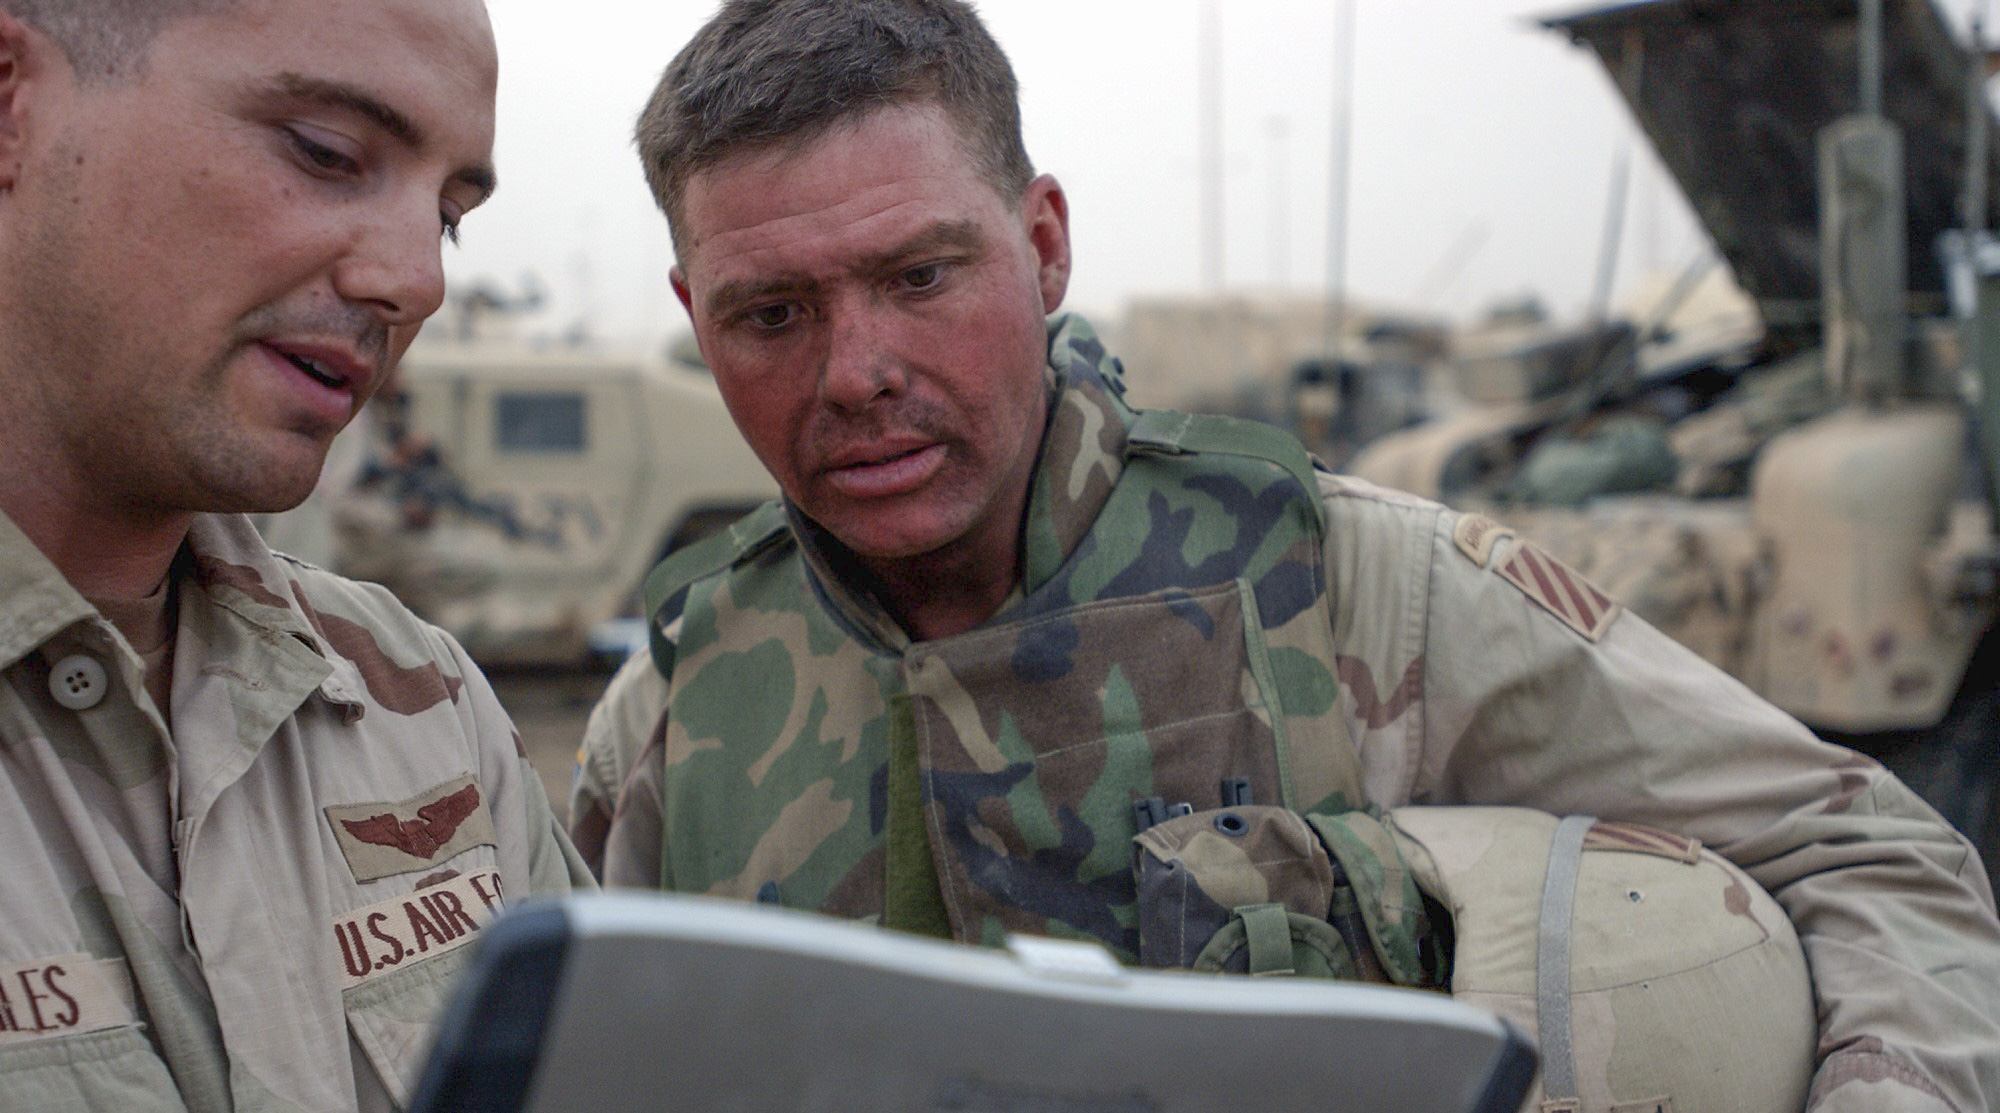 Col. David Perkins receives an update on day 18 during the invasion of Iraq in March 2003. (Army)